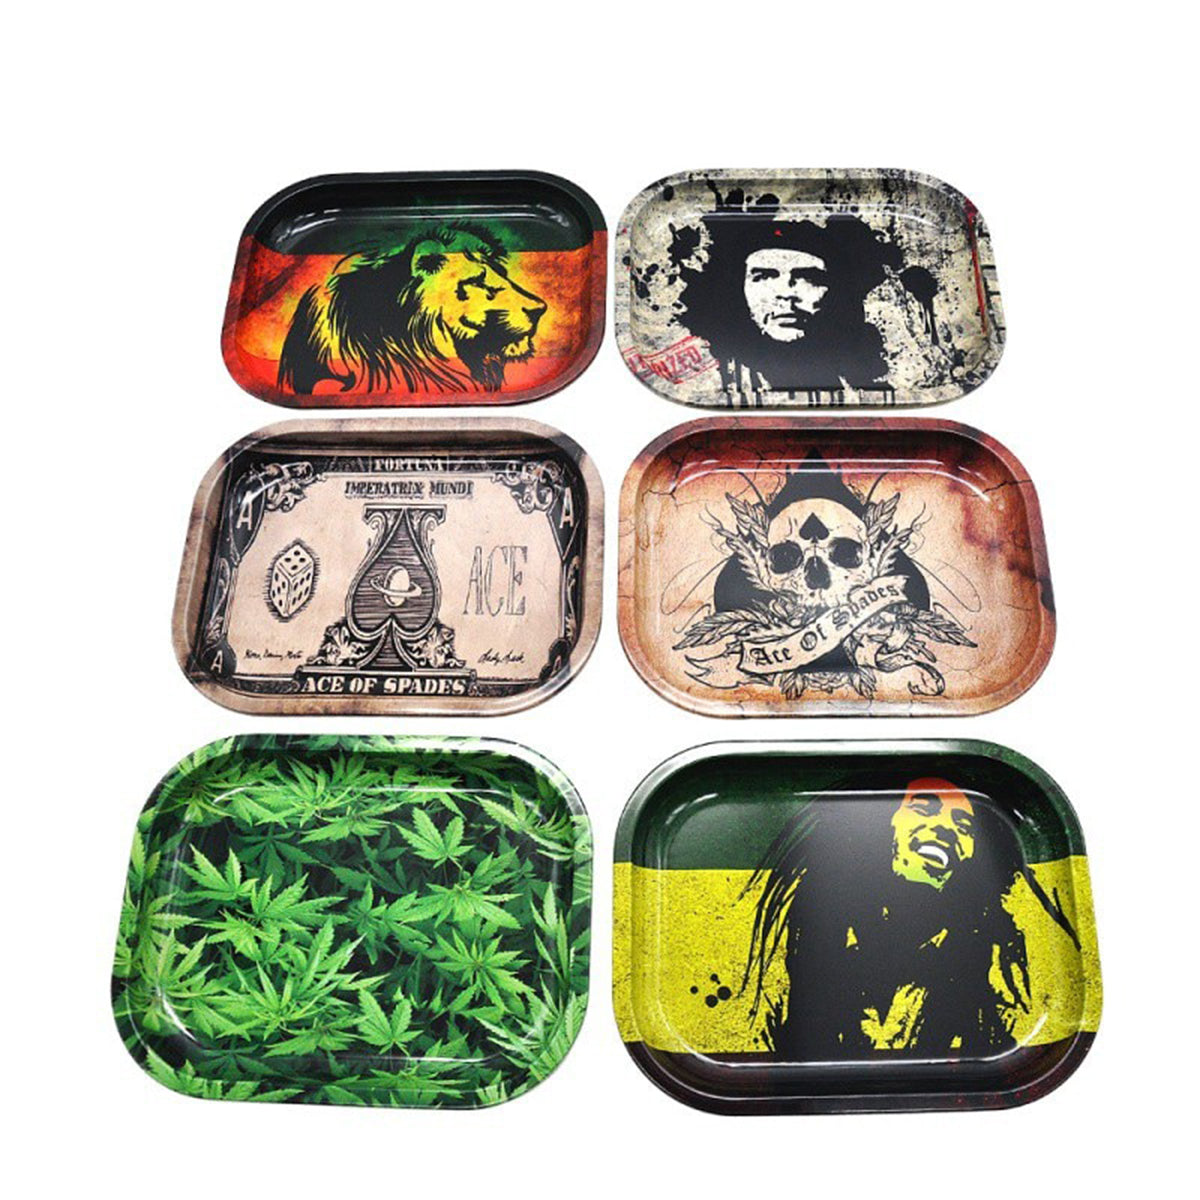 Tinplate Metal Tobacco Weed Rolling Tray